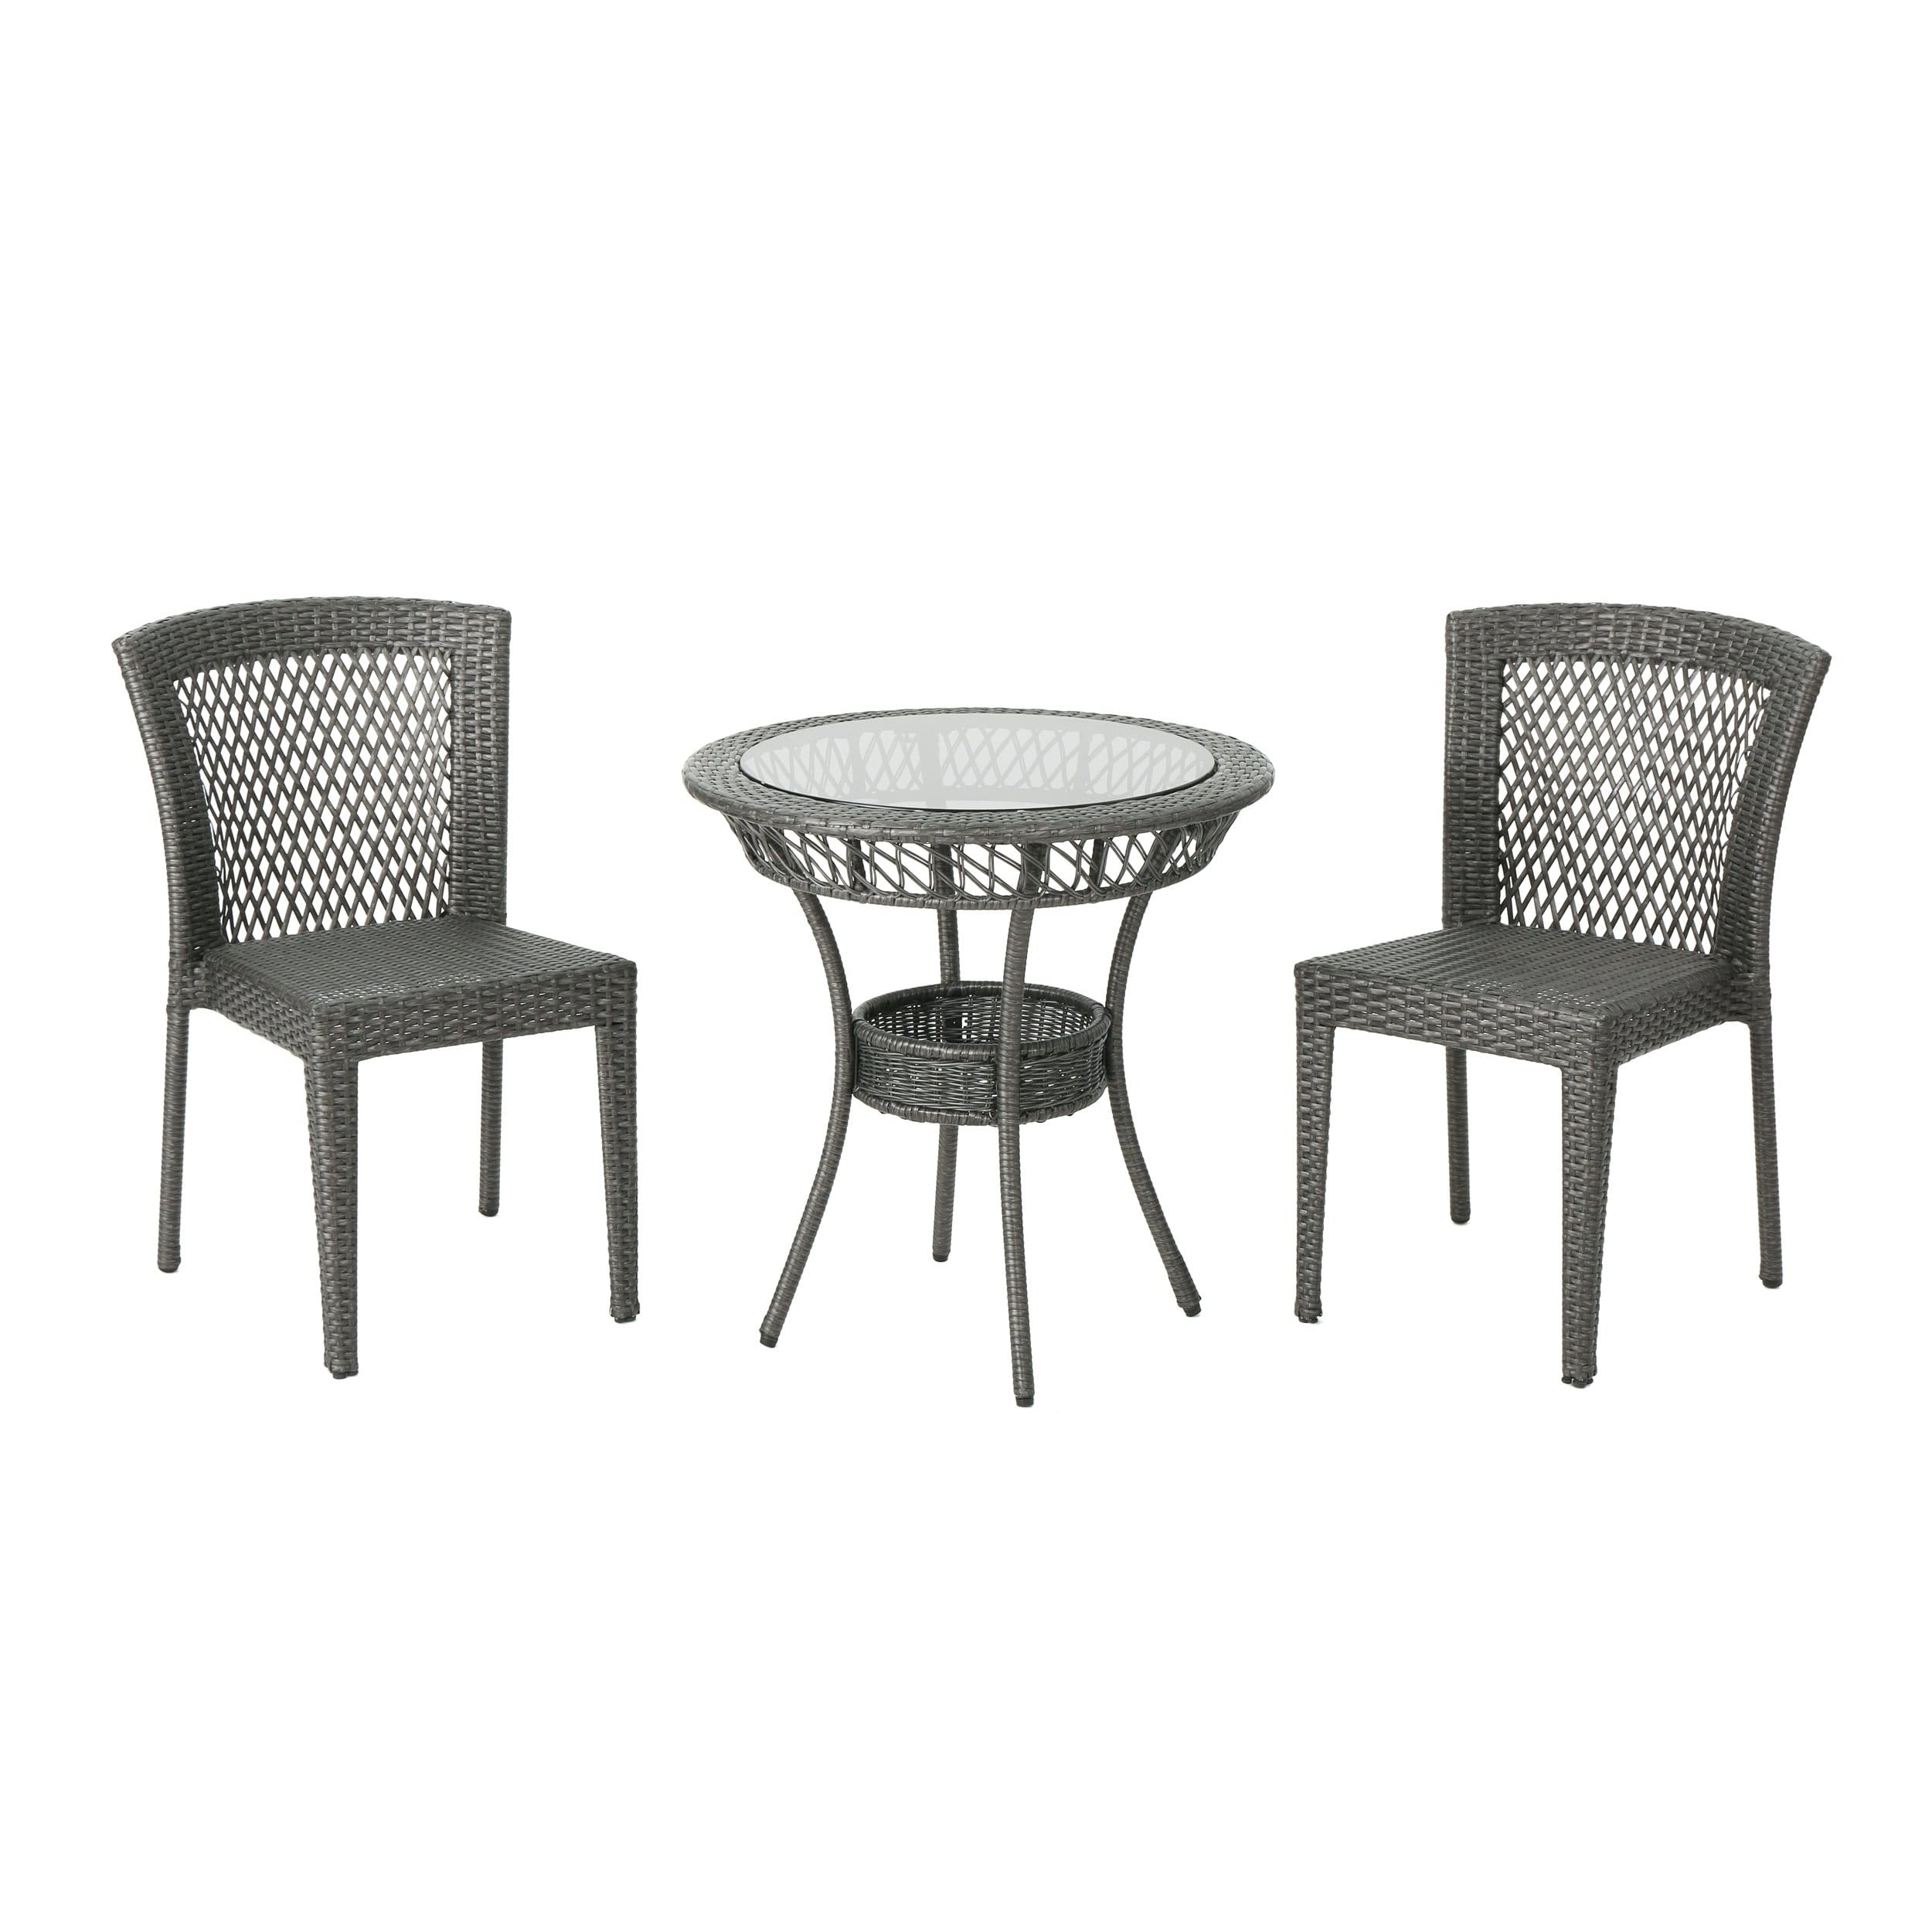 Christopher Knight Home Farley Outdoor Multi-brown 3-piece Wicker Bistro Set by